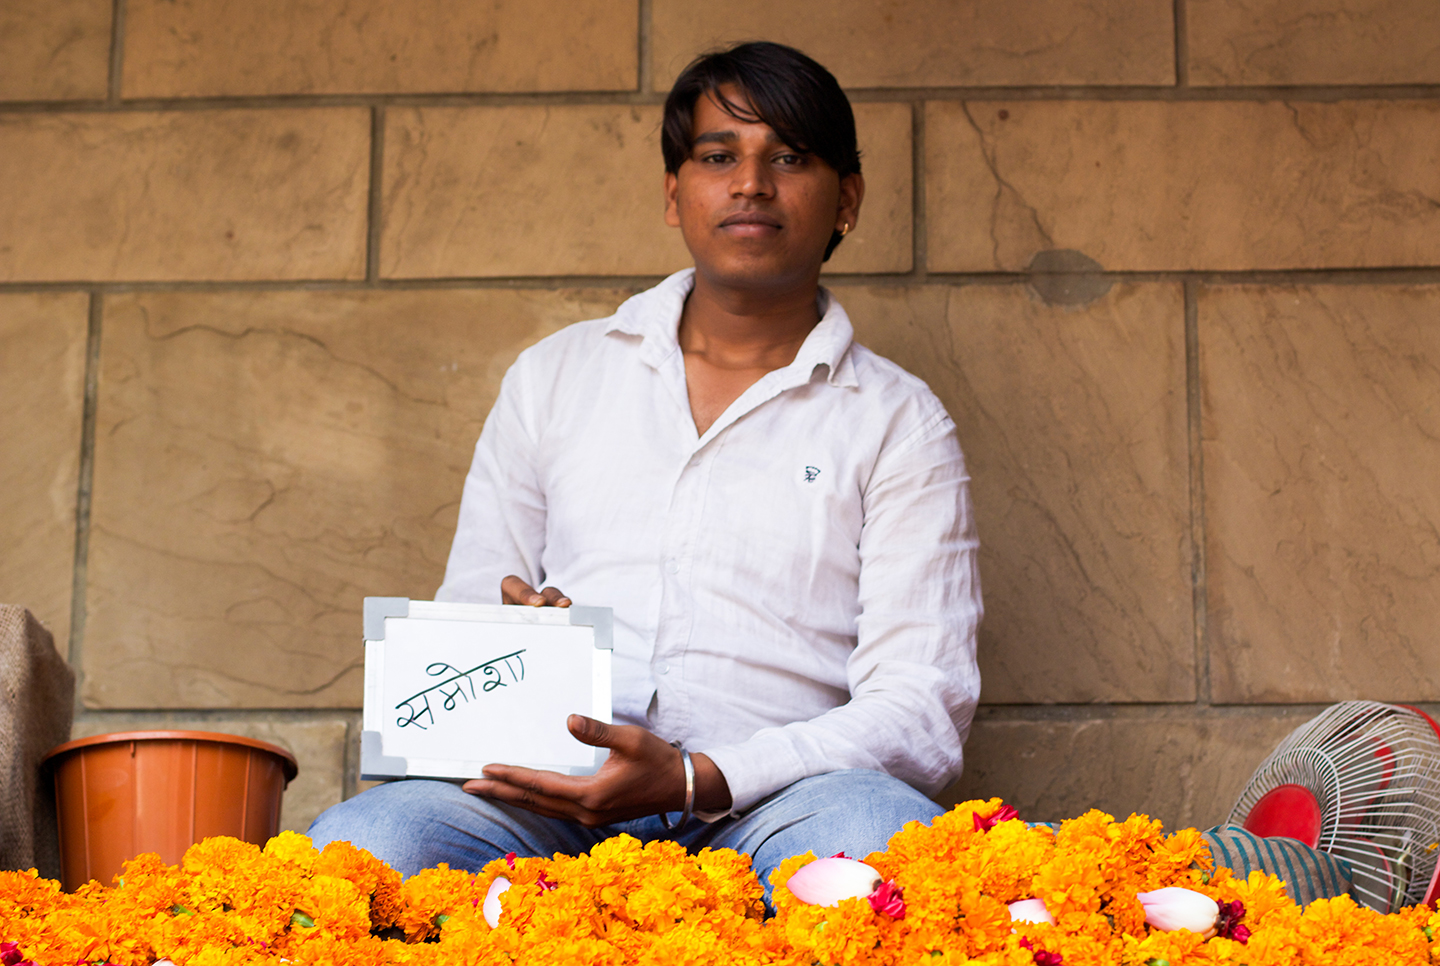 Monu from Delhi has been selling flowers at ISKCON, International Society for Krishna Consciousness, for 13 years.